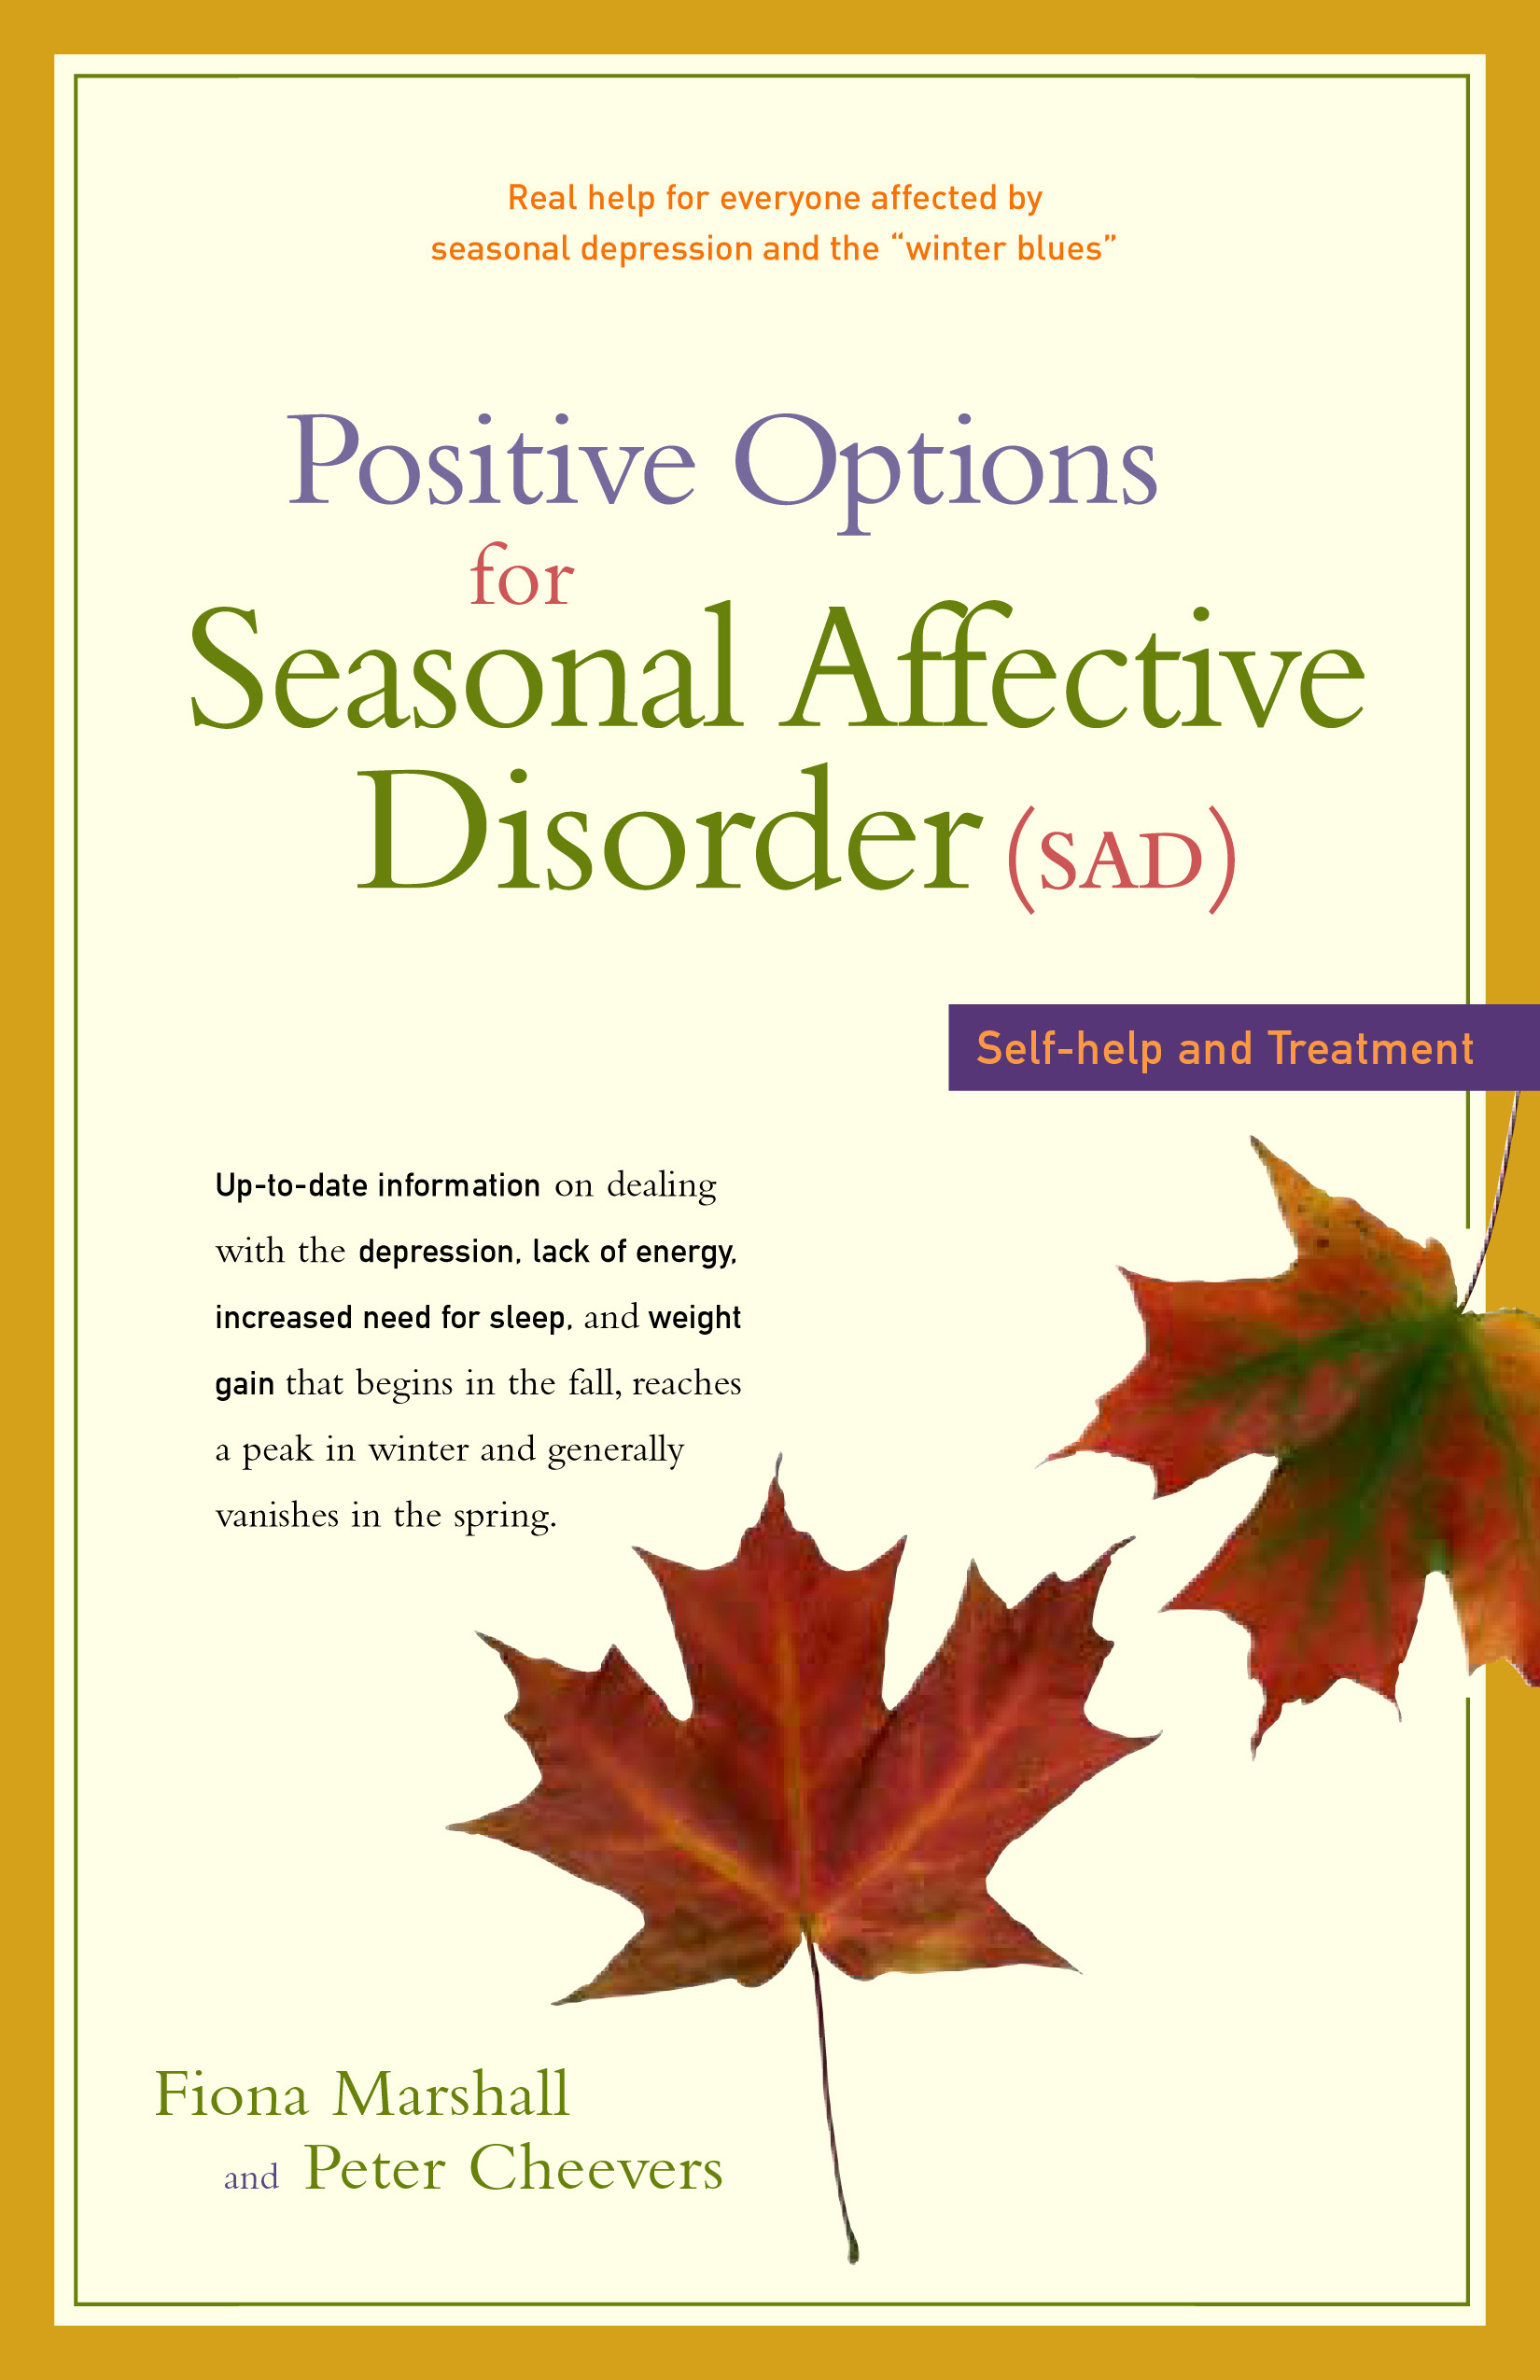 the symptoms and treatment for seasonal affective disorder